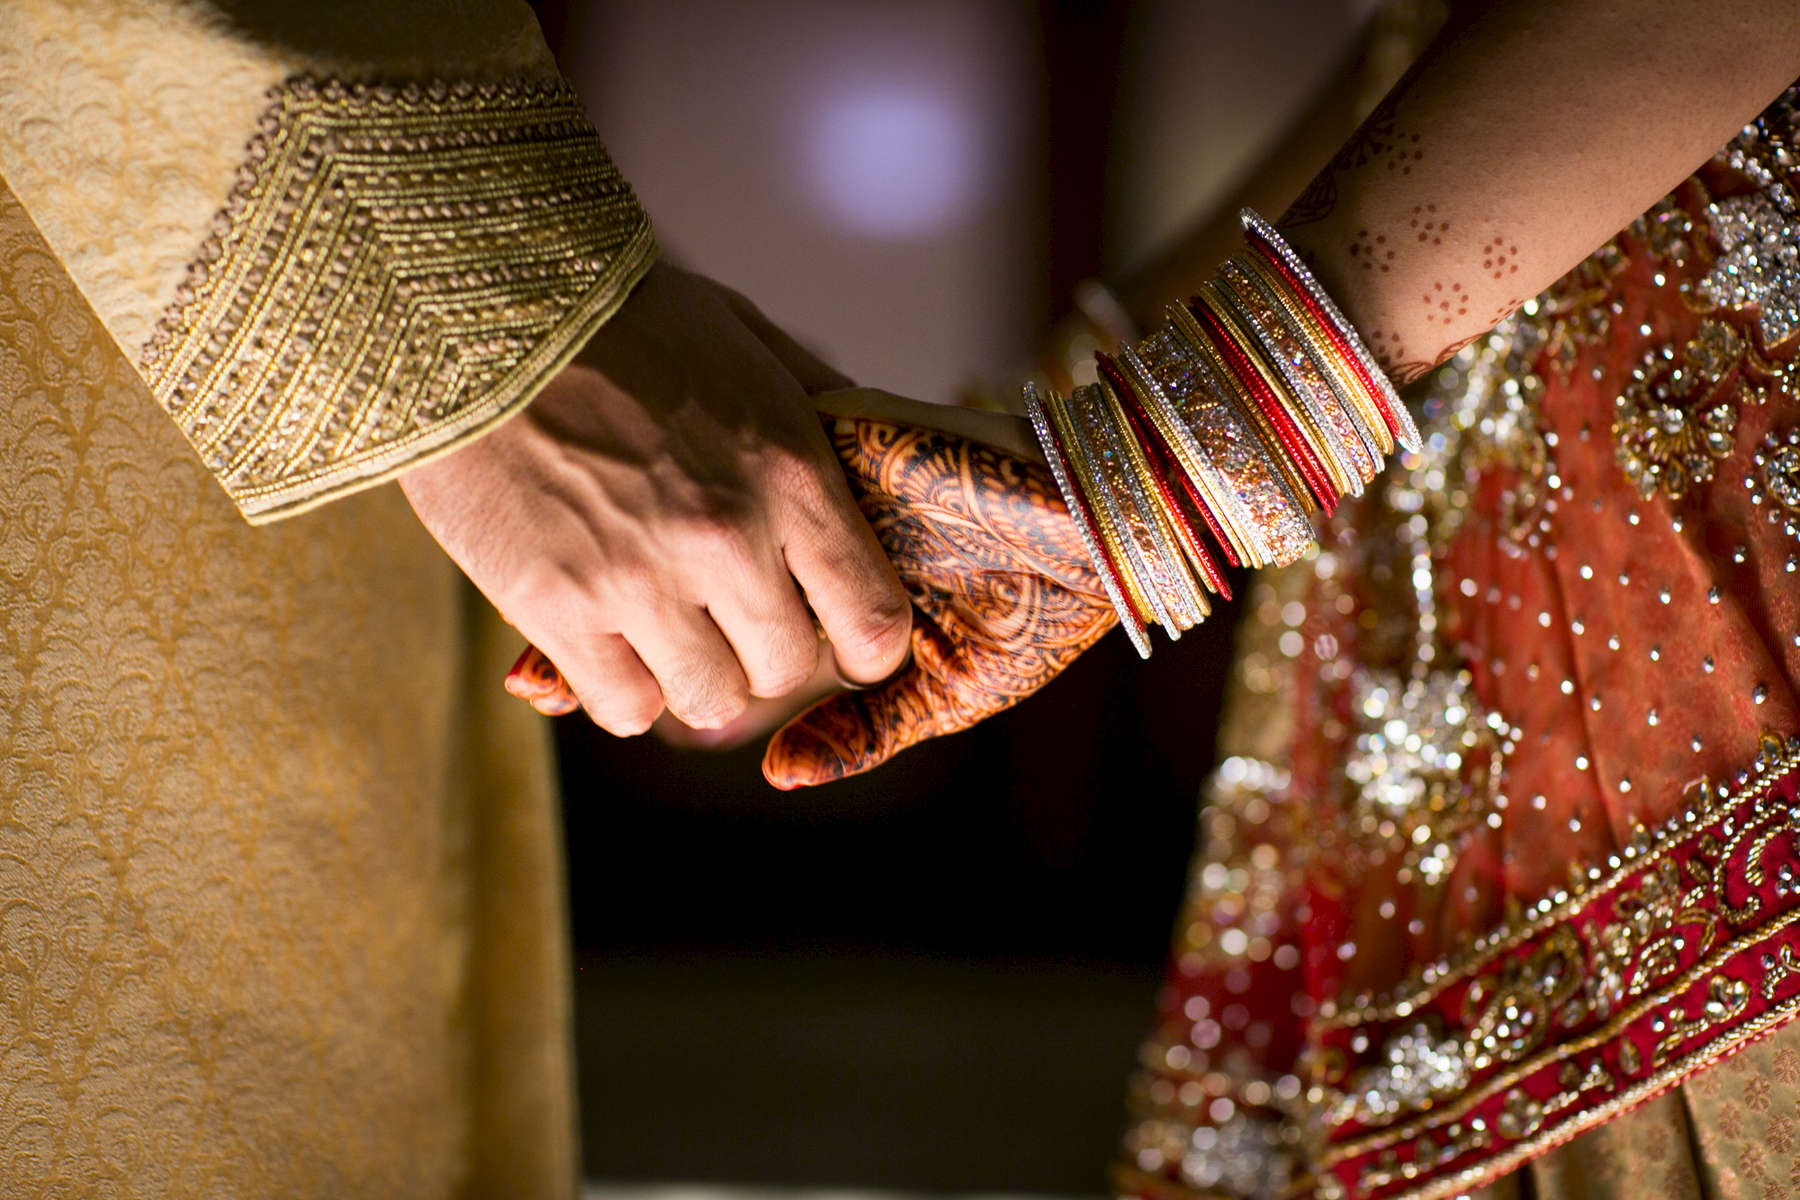 Haley Naik and Aneesh Raman wedding on September 1, 2012.